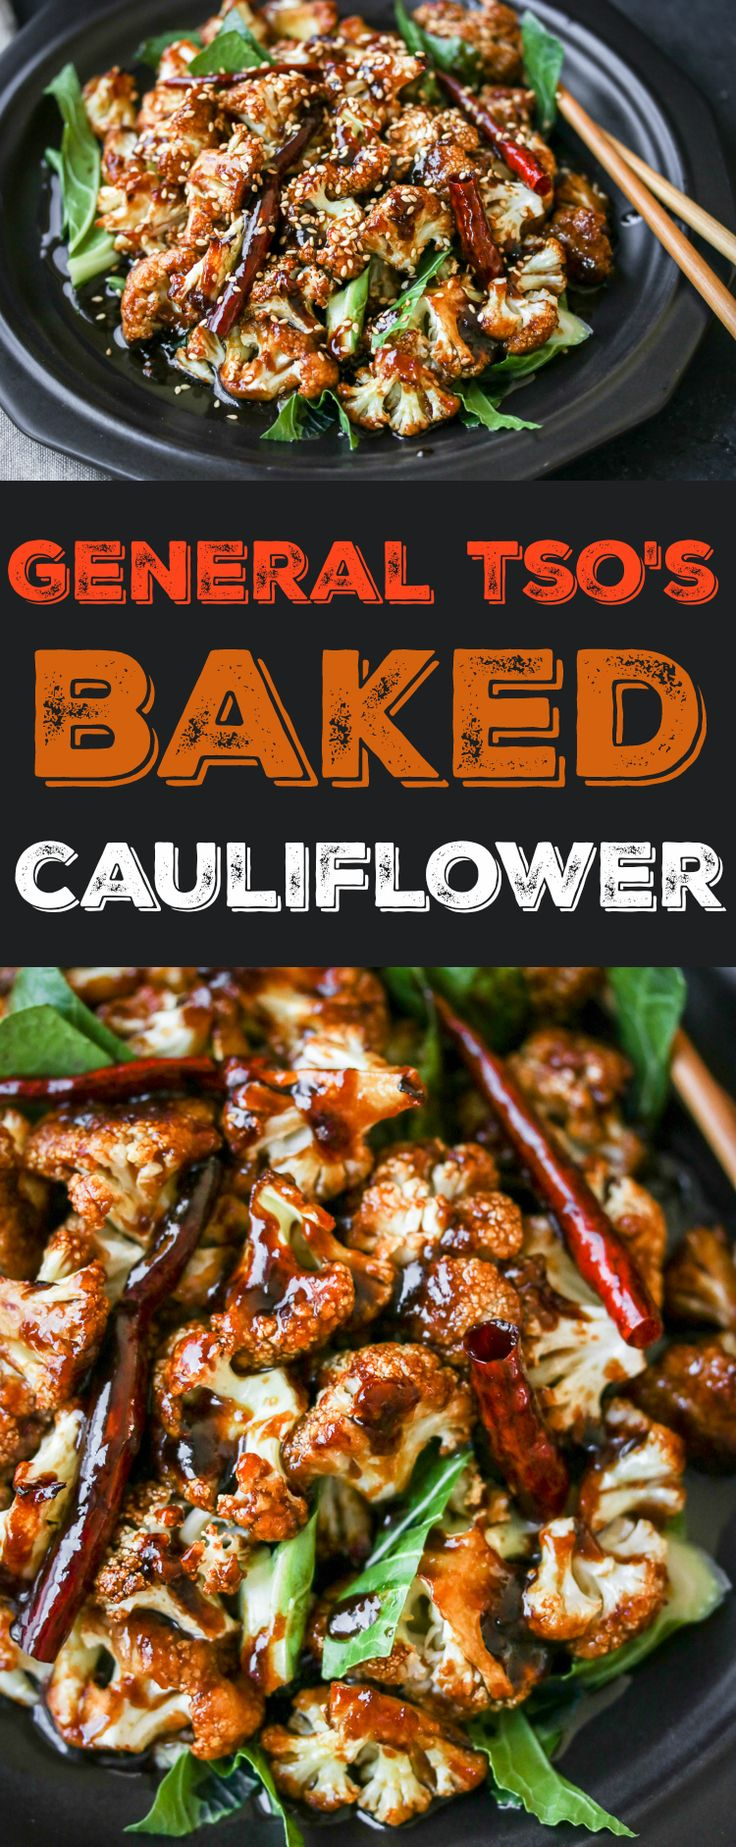 This recipe will convert just about anybody into a cauliflower lover. Serve it as a side, or make it a main dish for an awesome vegan meal!